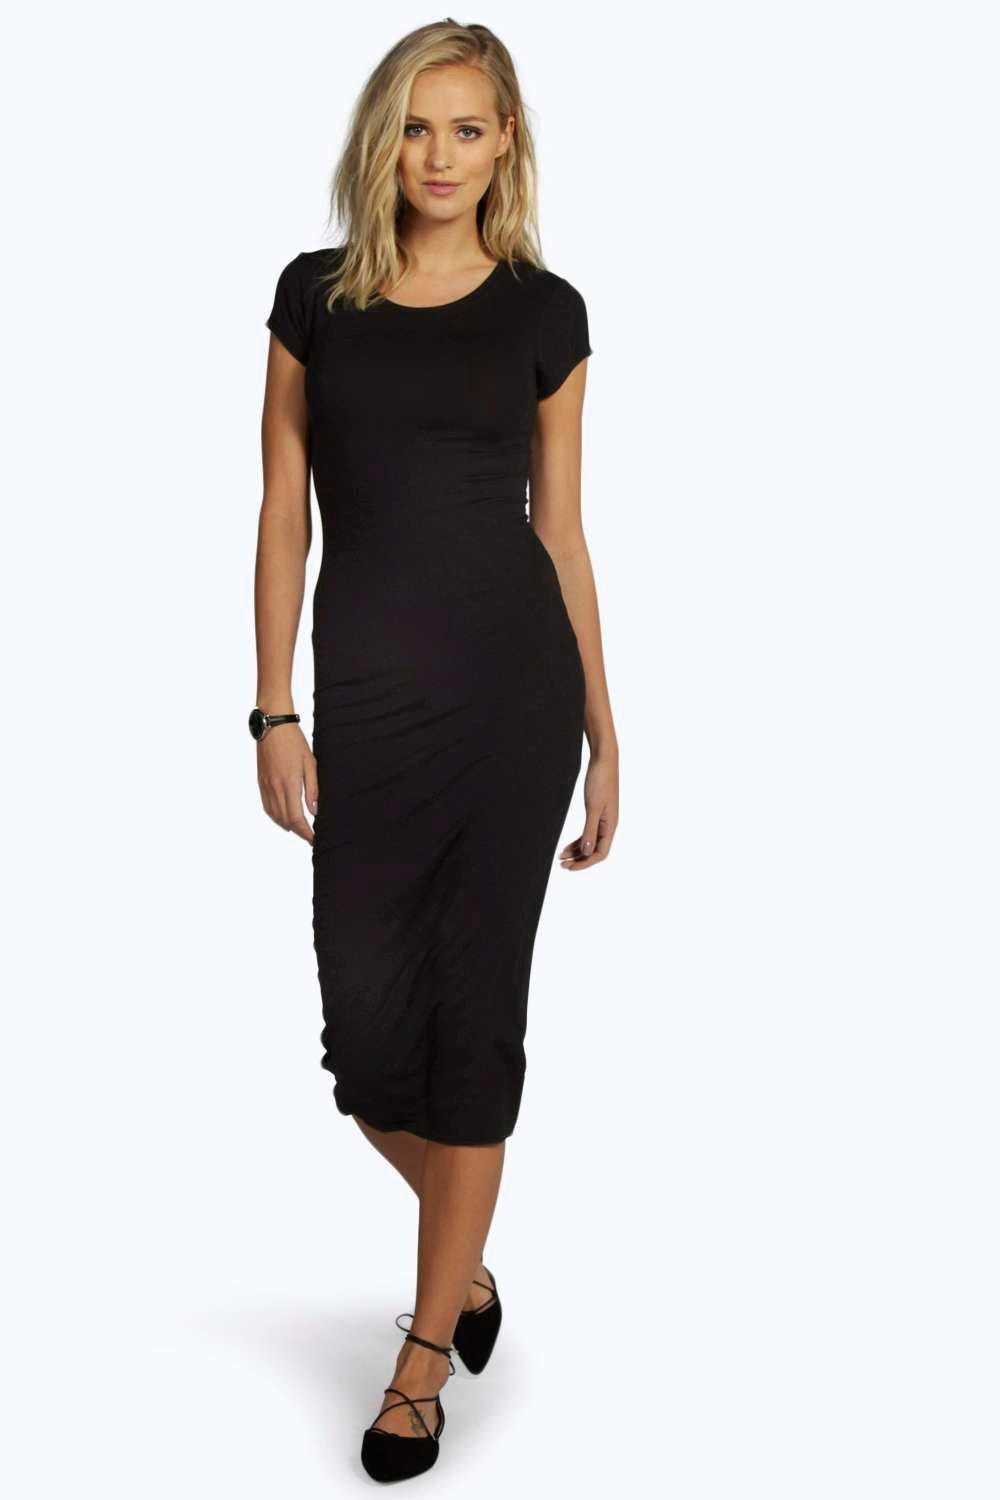 Boohoo Womens Tall Lola Cap Sleeve Midi Jersey Dress | EBay